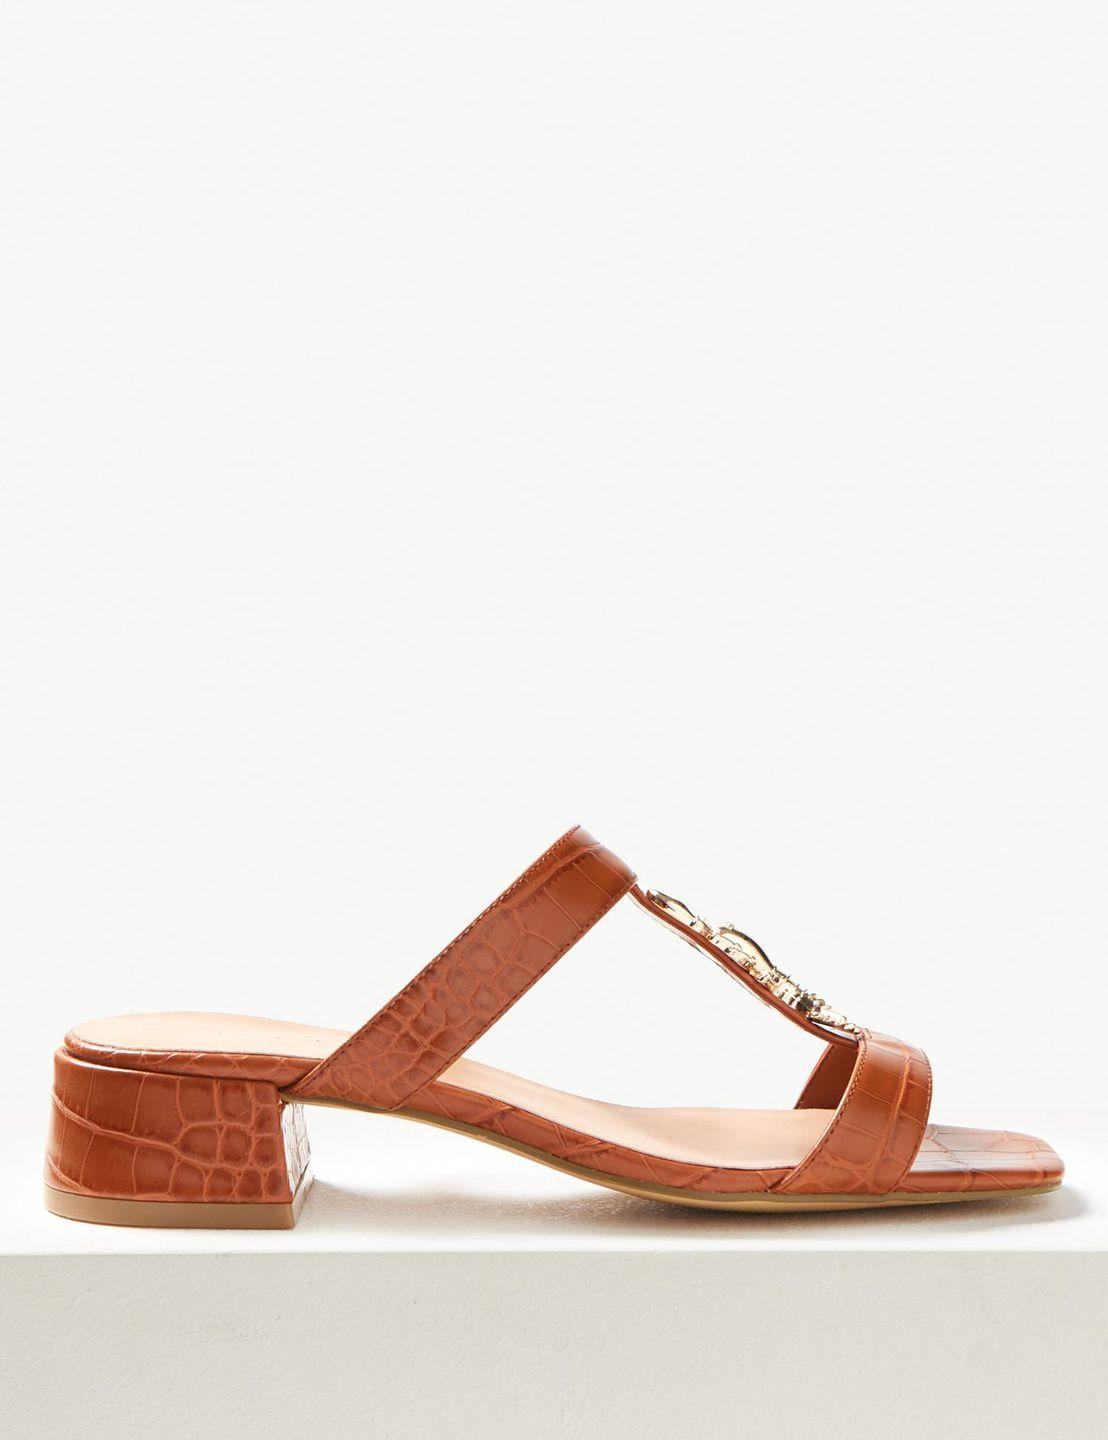 dd84b15e6e Fans are loving Marks & Spencer's limited-edition £35 summery heeled sandals